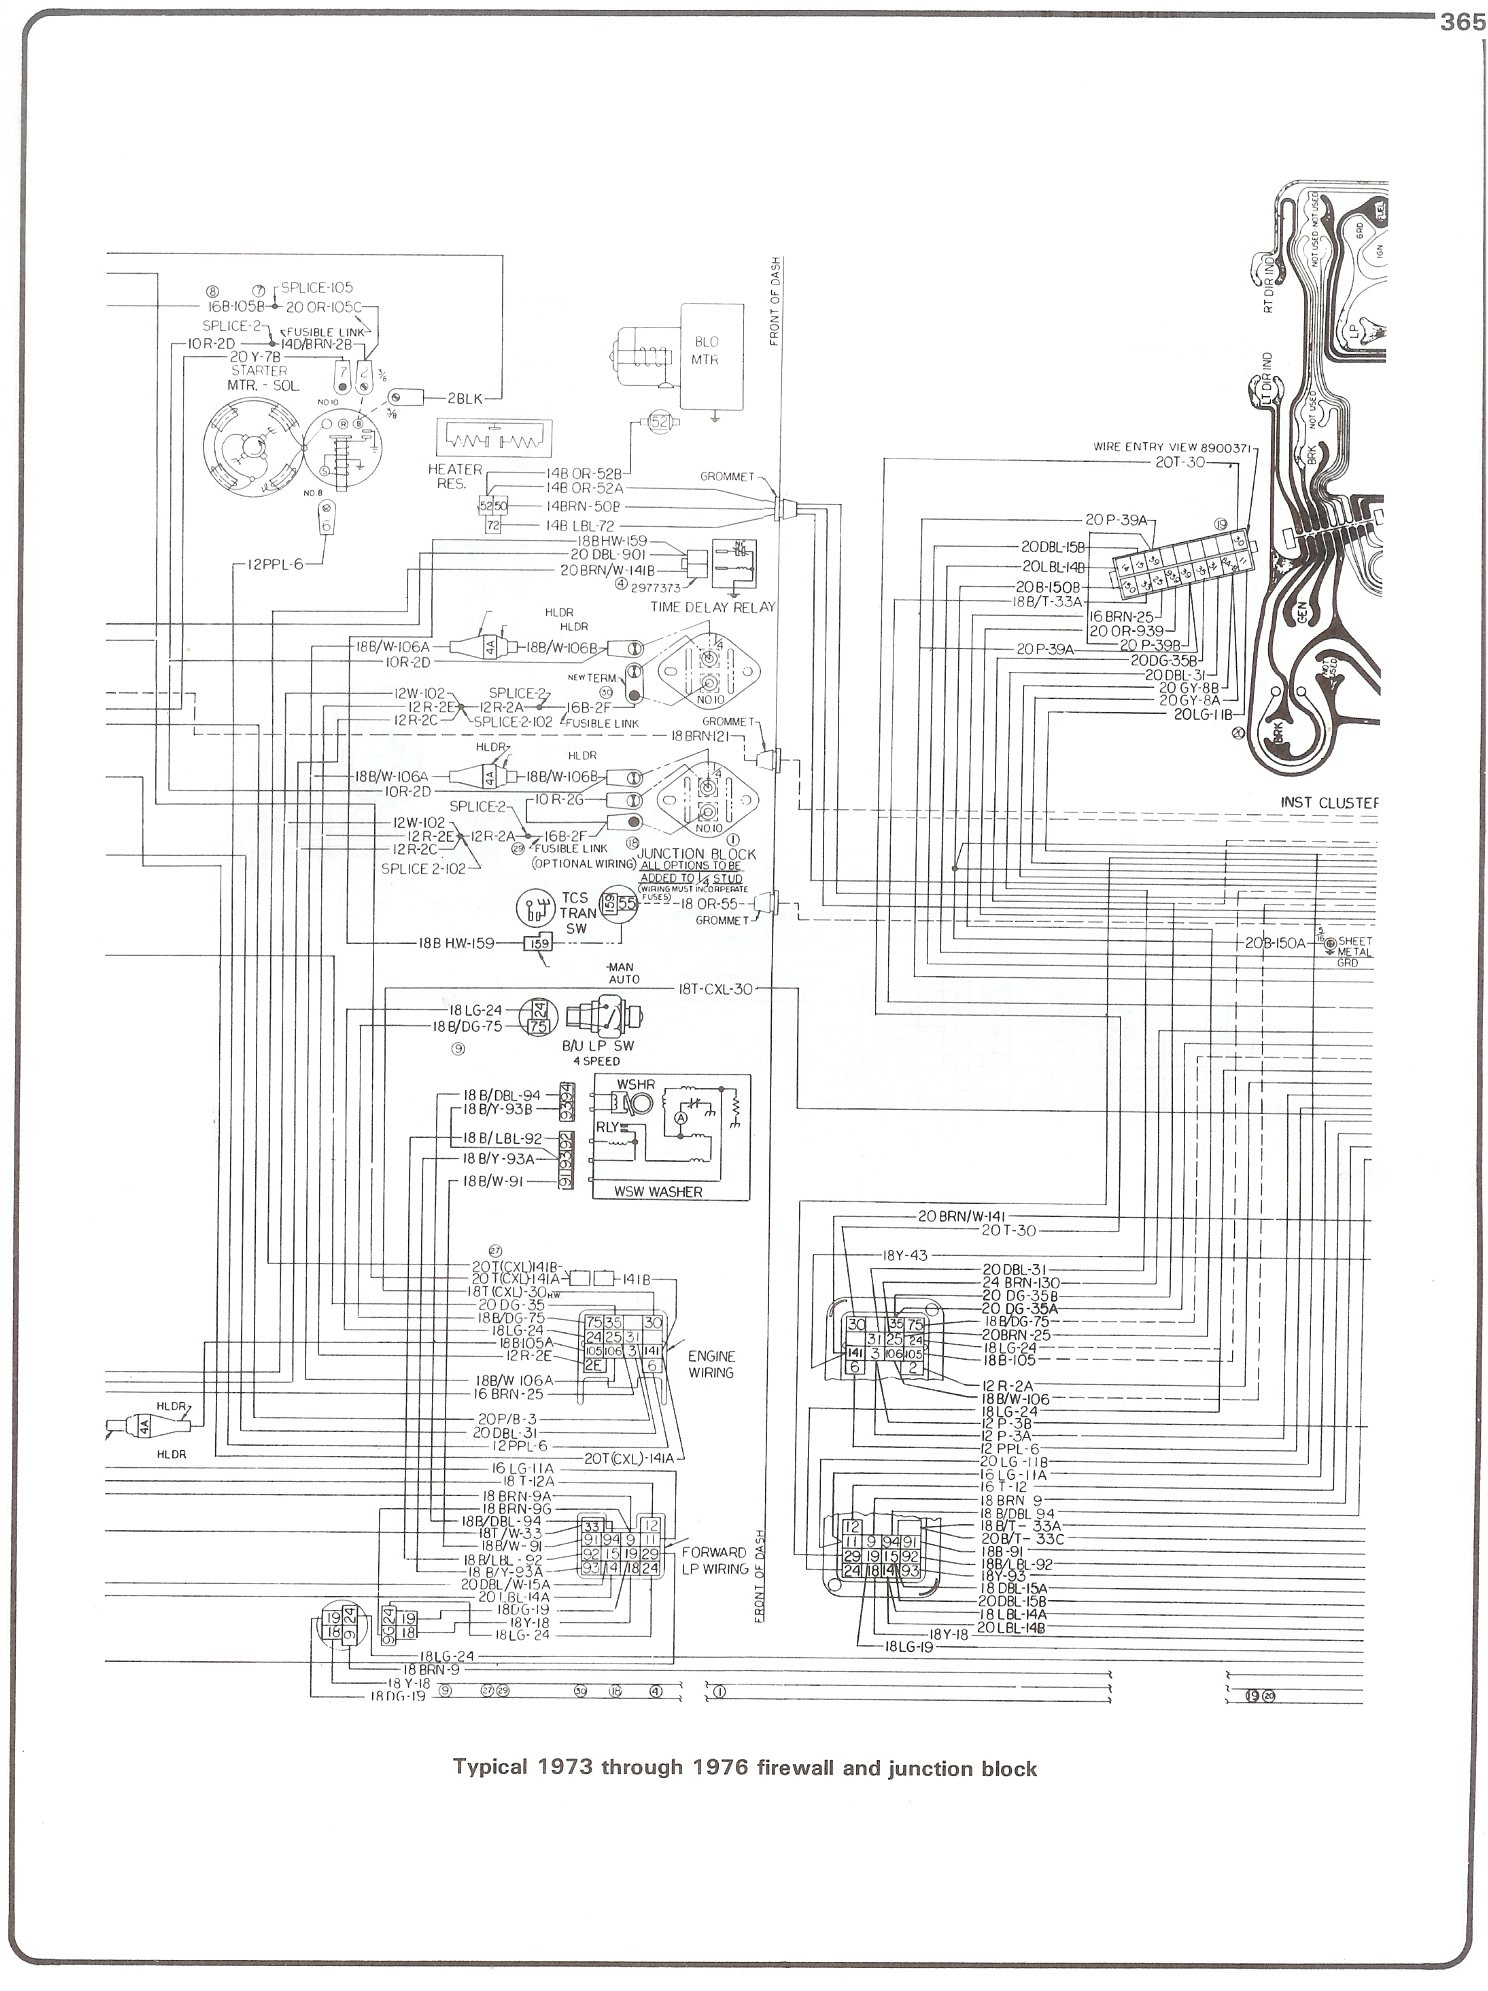 Complete 73 87 Wiring Diagrams 79 Camaro Tachometer Diagram 76 Firewall Junction